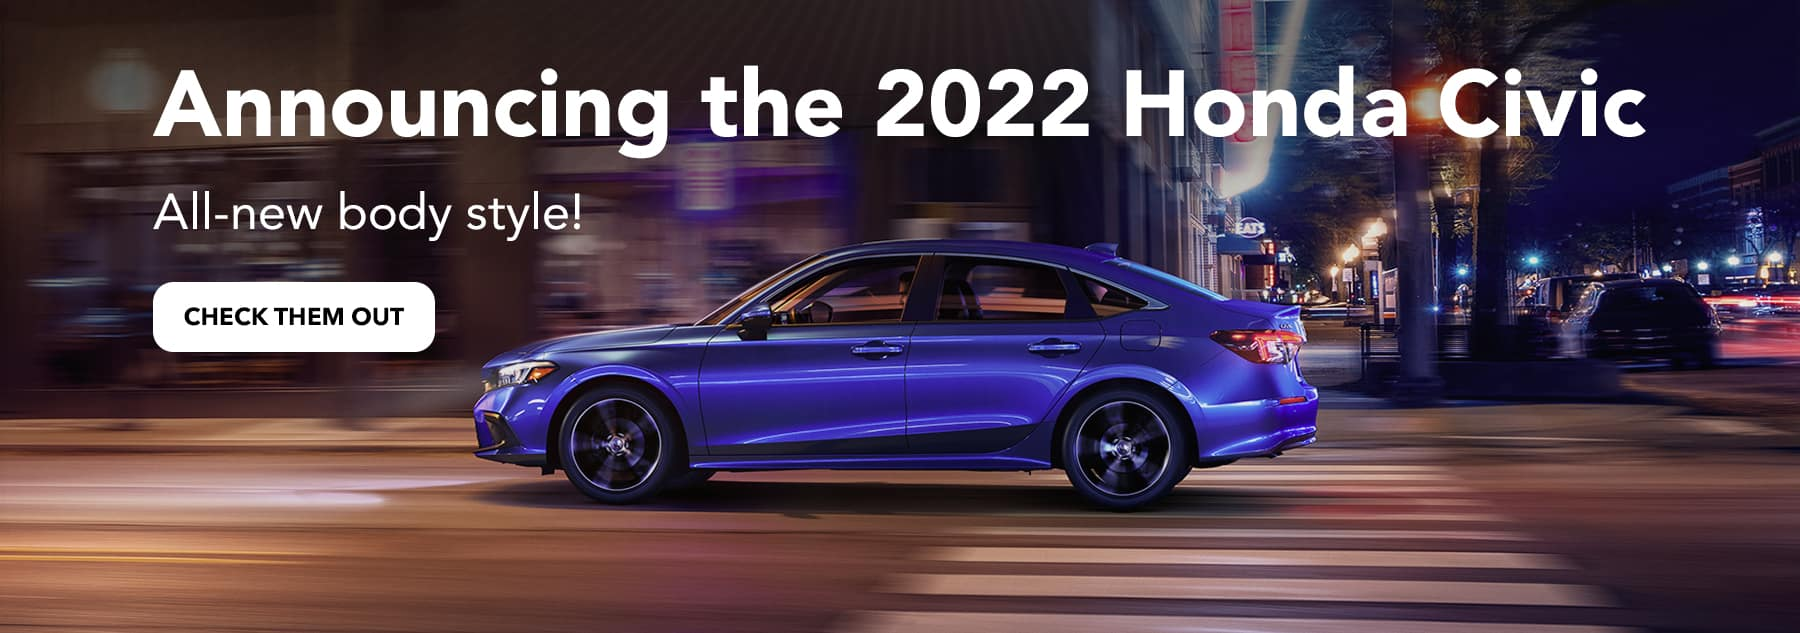 Announcing the 2022 Honda Civic, All-new body style!